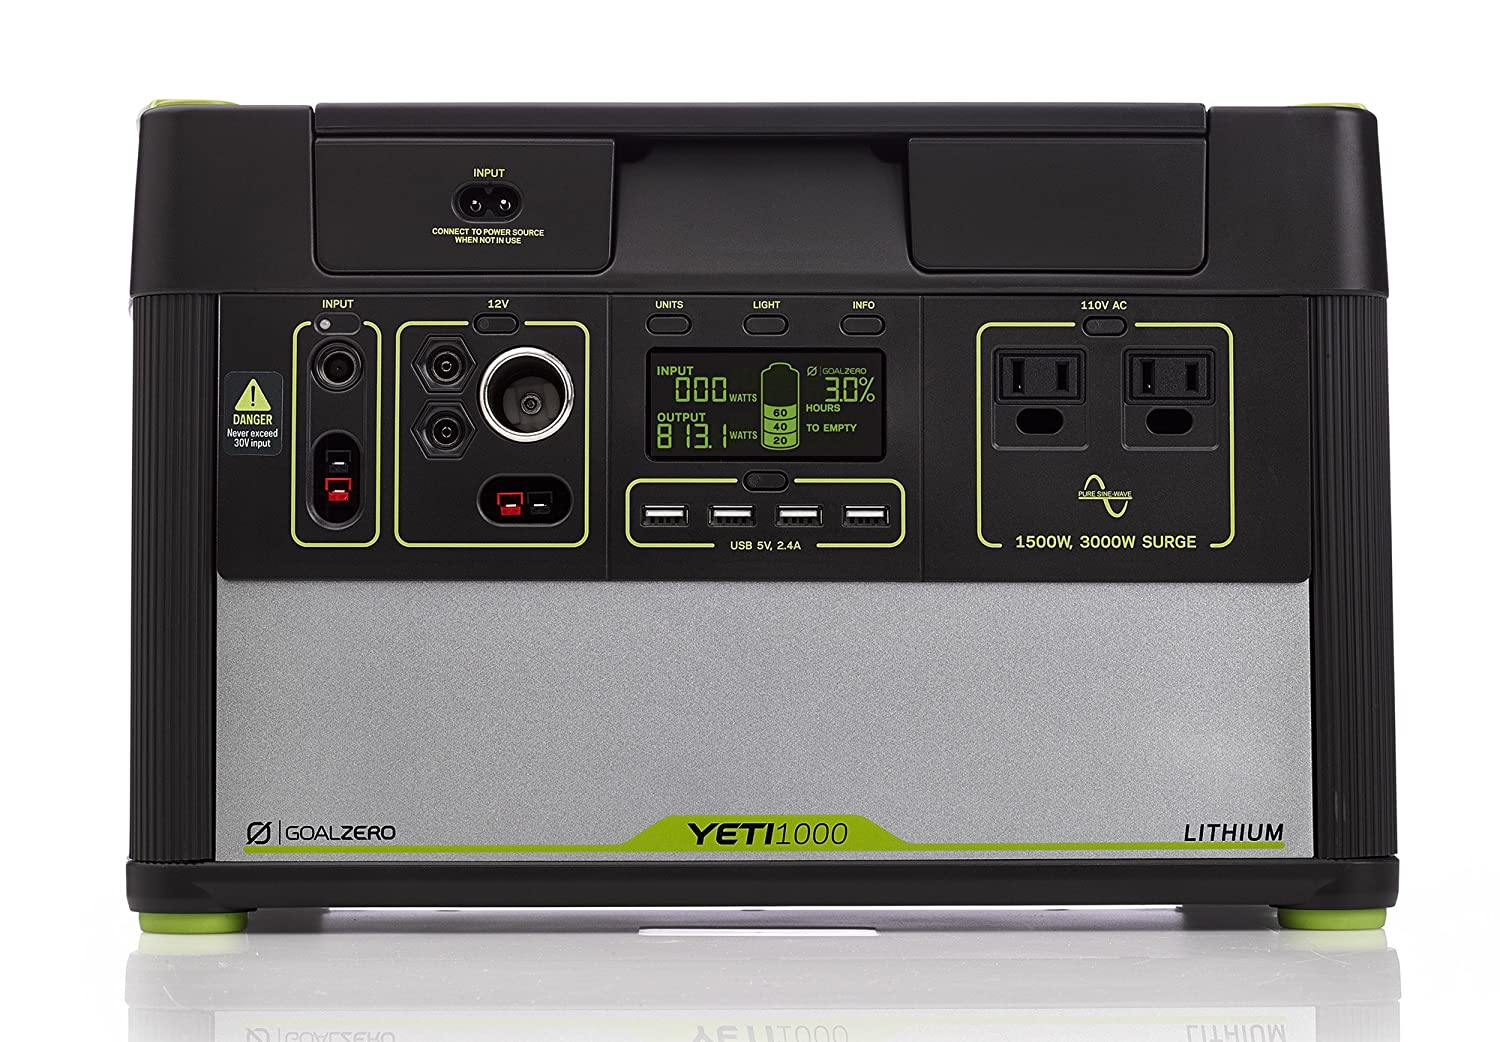 Goal Zero Yeti 1000 Lithium Portable Power Station, 1045Wh Silent Gas Free Generator Alternative with 1500W 3000W Surge Inverter, 12V and USB Outputs